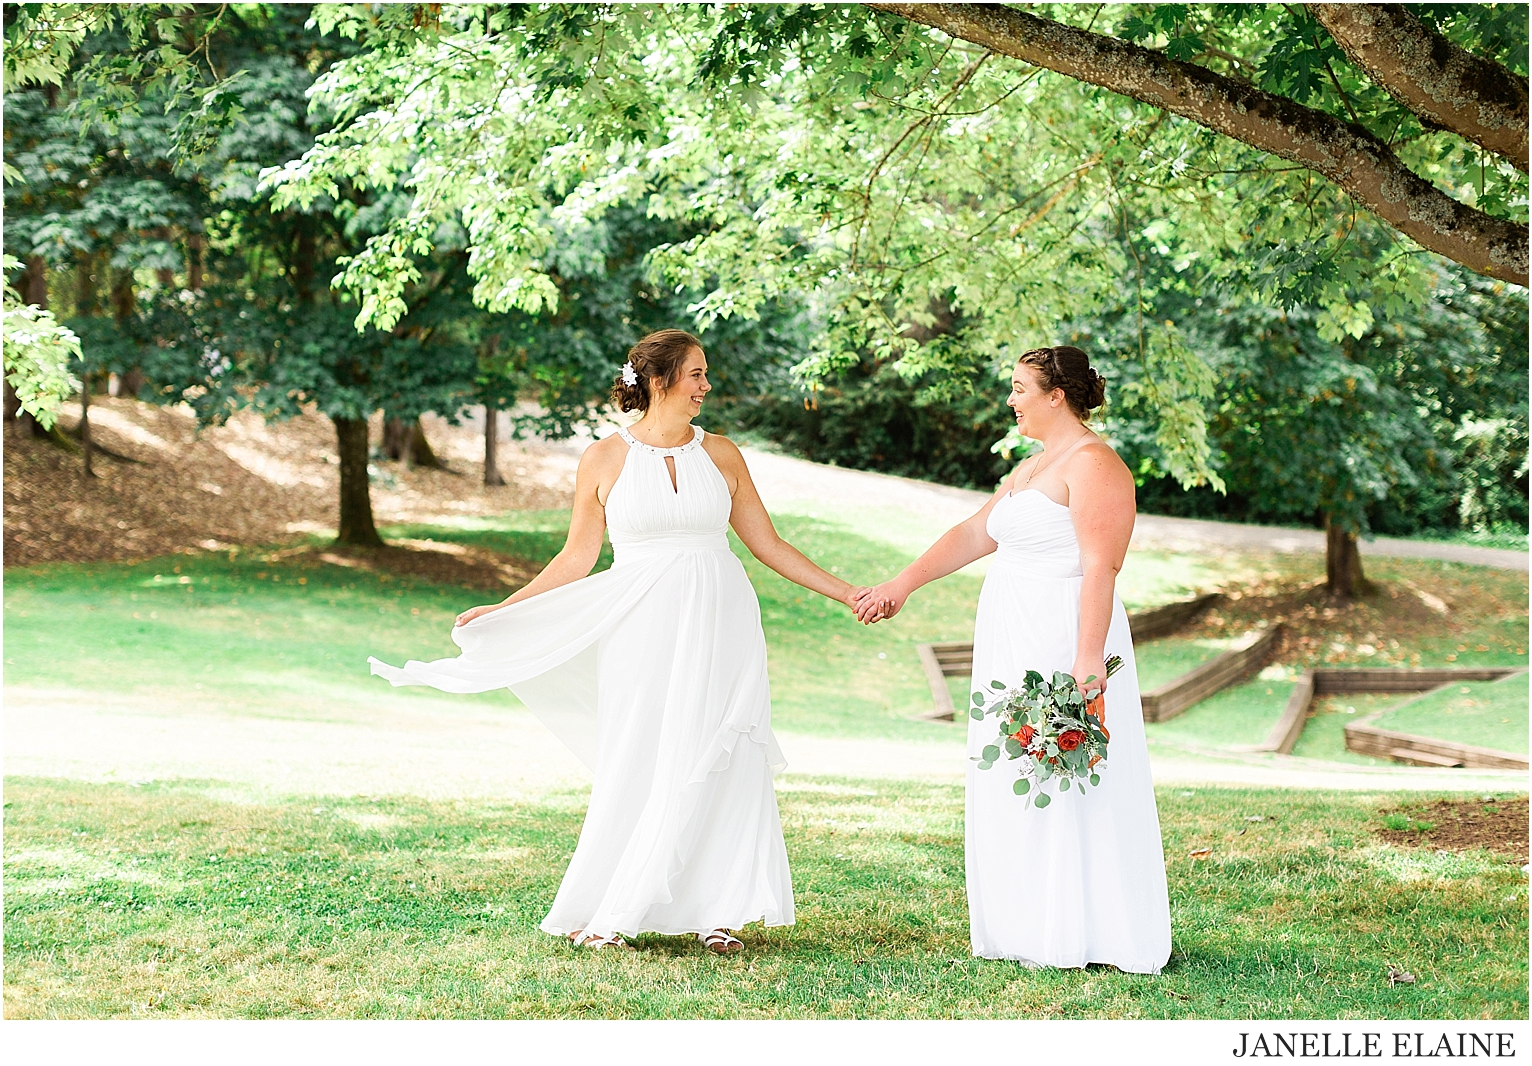 liz and christina lanning-first look and portraits-luther burbank park-janelle elaine photography-159.jpg